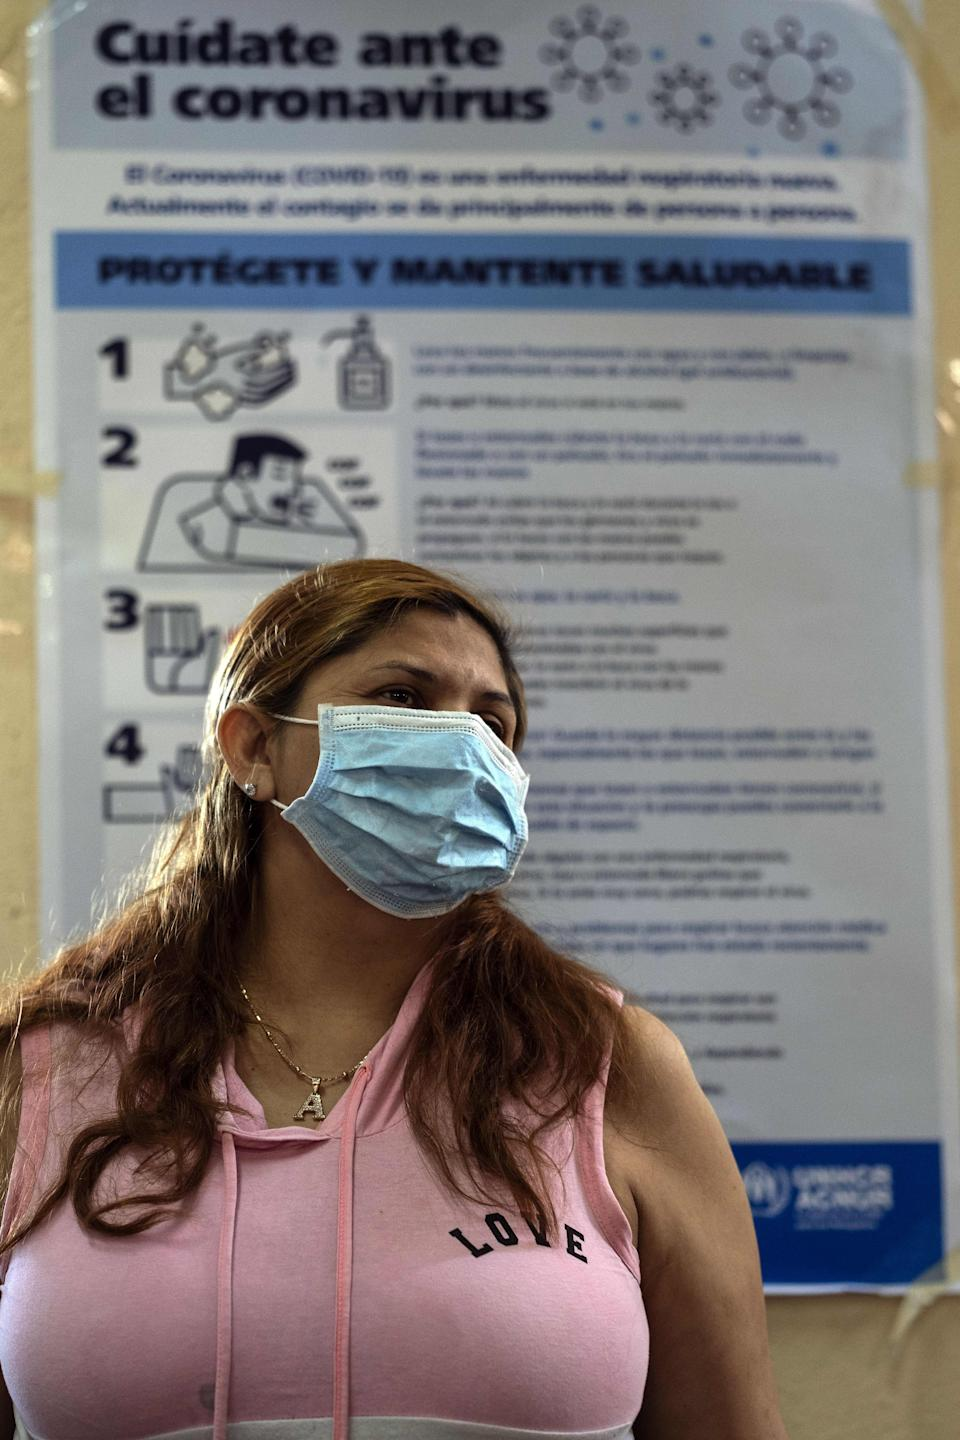 An asylum seeker wears a face mask near a poster with information on the prevention of COVID-19, at the Juventud 2000 migrant shelter in Tijuana, Baja California State, Mexico, on April 3, 2020 during the novel coronavirus pandemic. - Thousands of migrants overcrowding shelters or begging in the streets in Mexican cities along the US border are living in fear as the novel coronavirus spreads in the population and screening interviews for asylum seekers are being suspended. (Photo by Guillermo ARIAS / AFP) (Photo by GUILLERMO ARIAS/AFP via Getty Images)